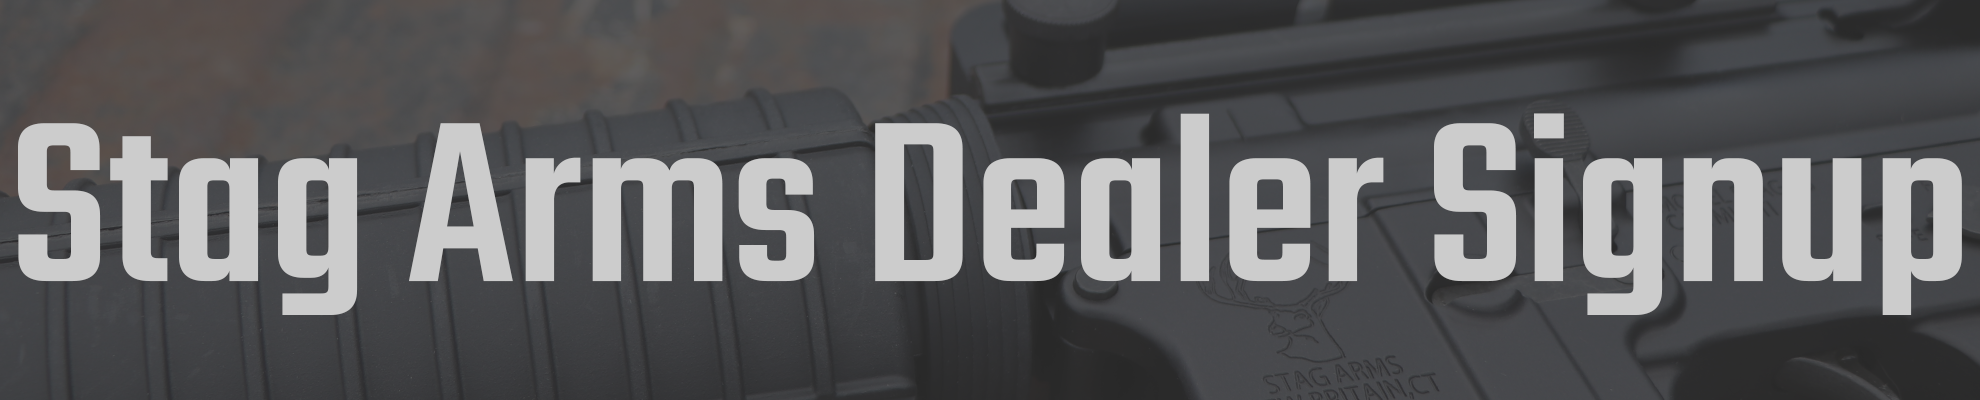 Stag Arms Dealer Signup